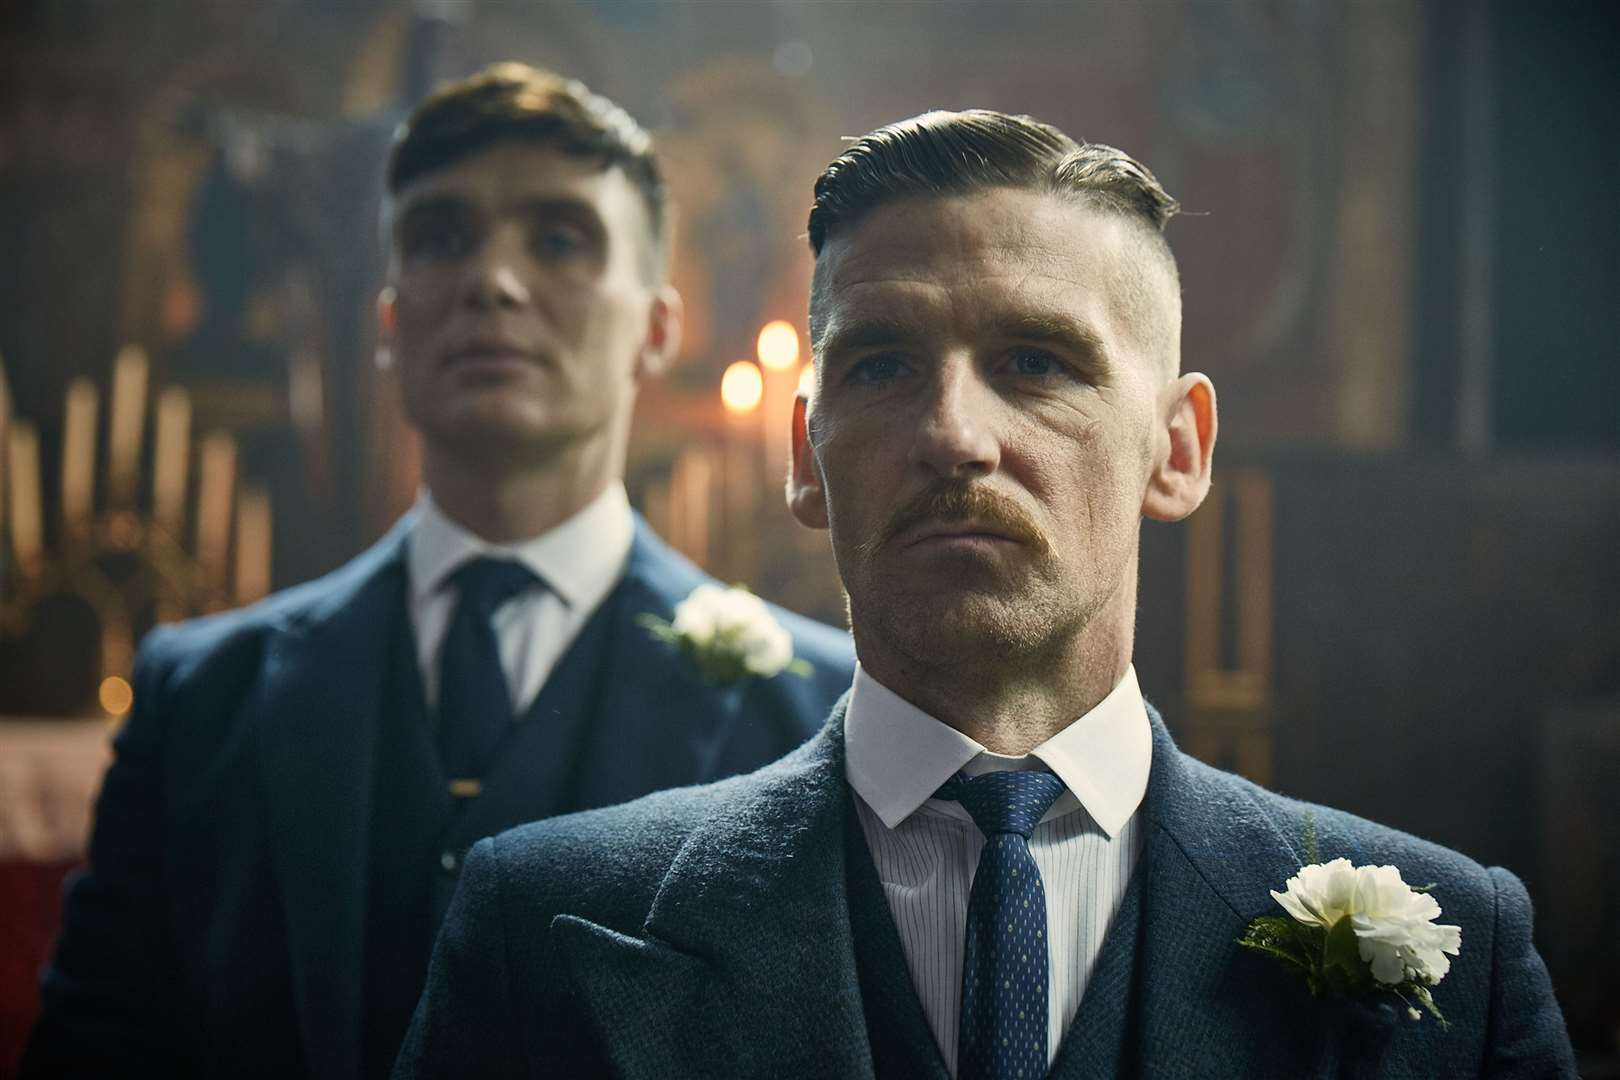 The character of Arthur Shelby (Paul Anderson) in TV's Peaky Blinders may have contributed to a surge in popularity for it as a baby's name